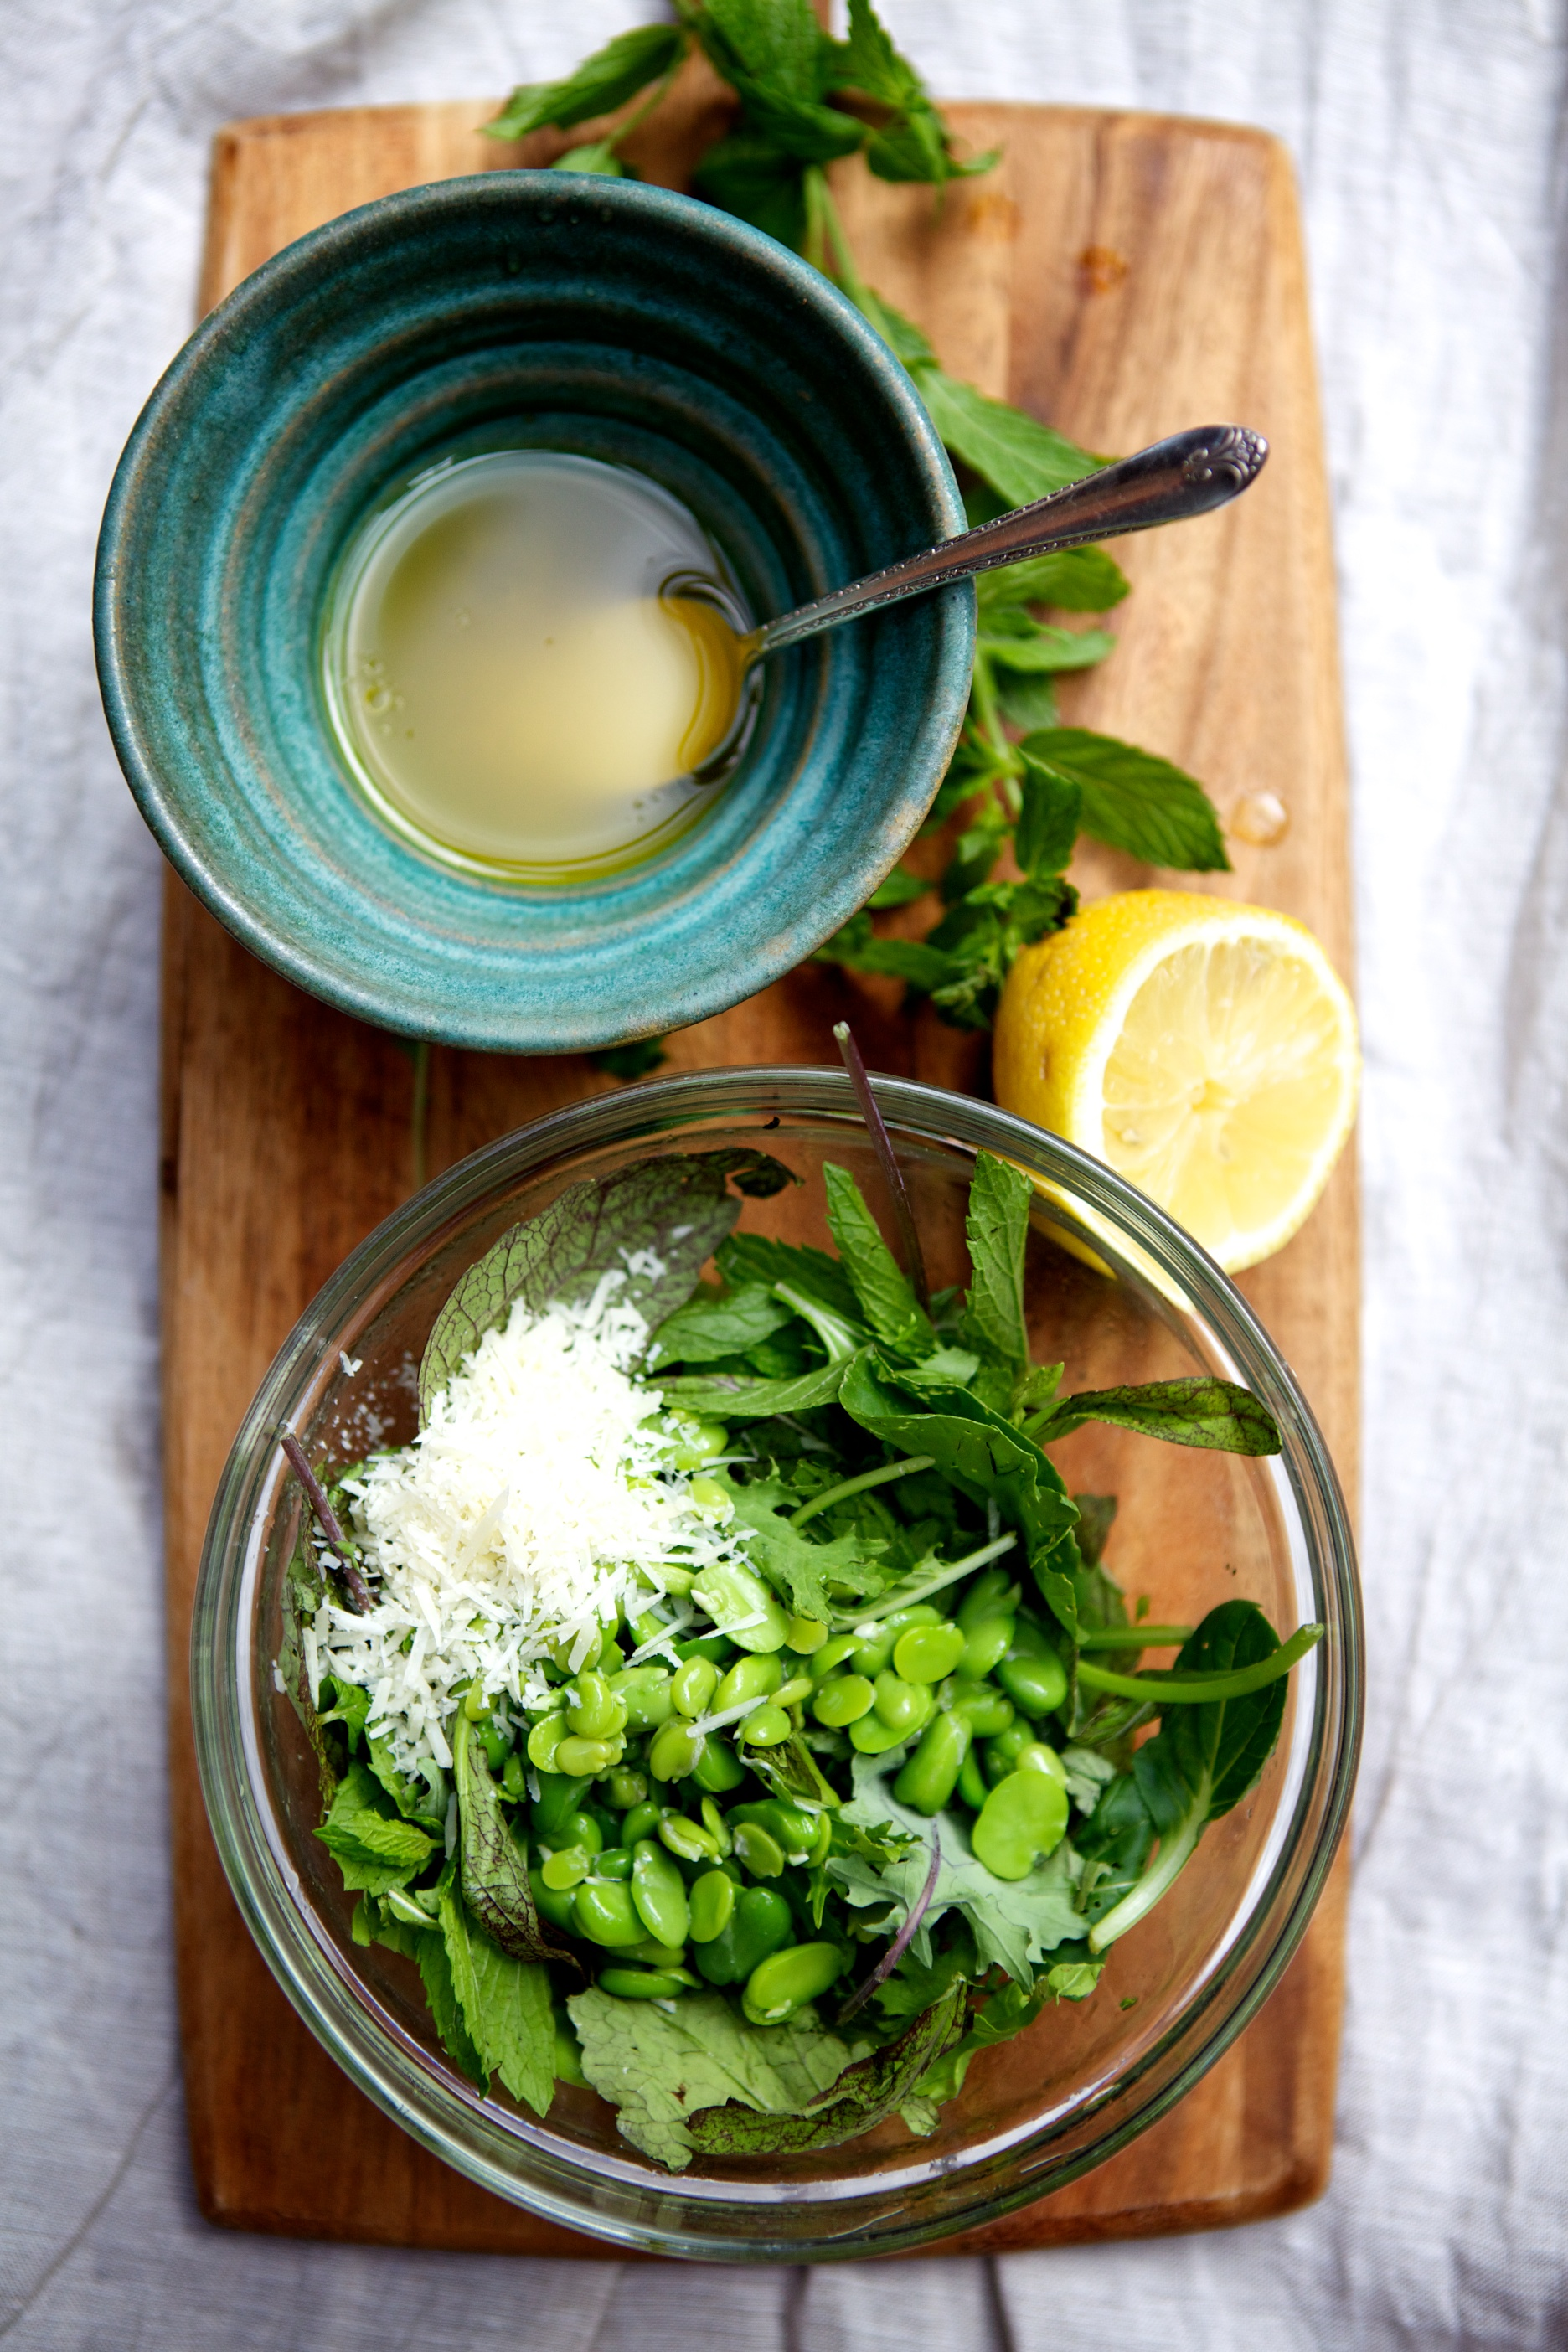 Fava Bean Salad with Mint, Mustard Greens & Parmesan